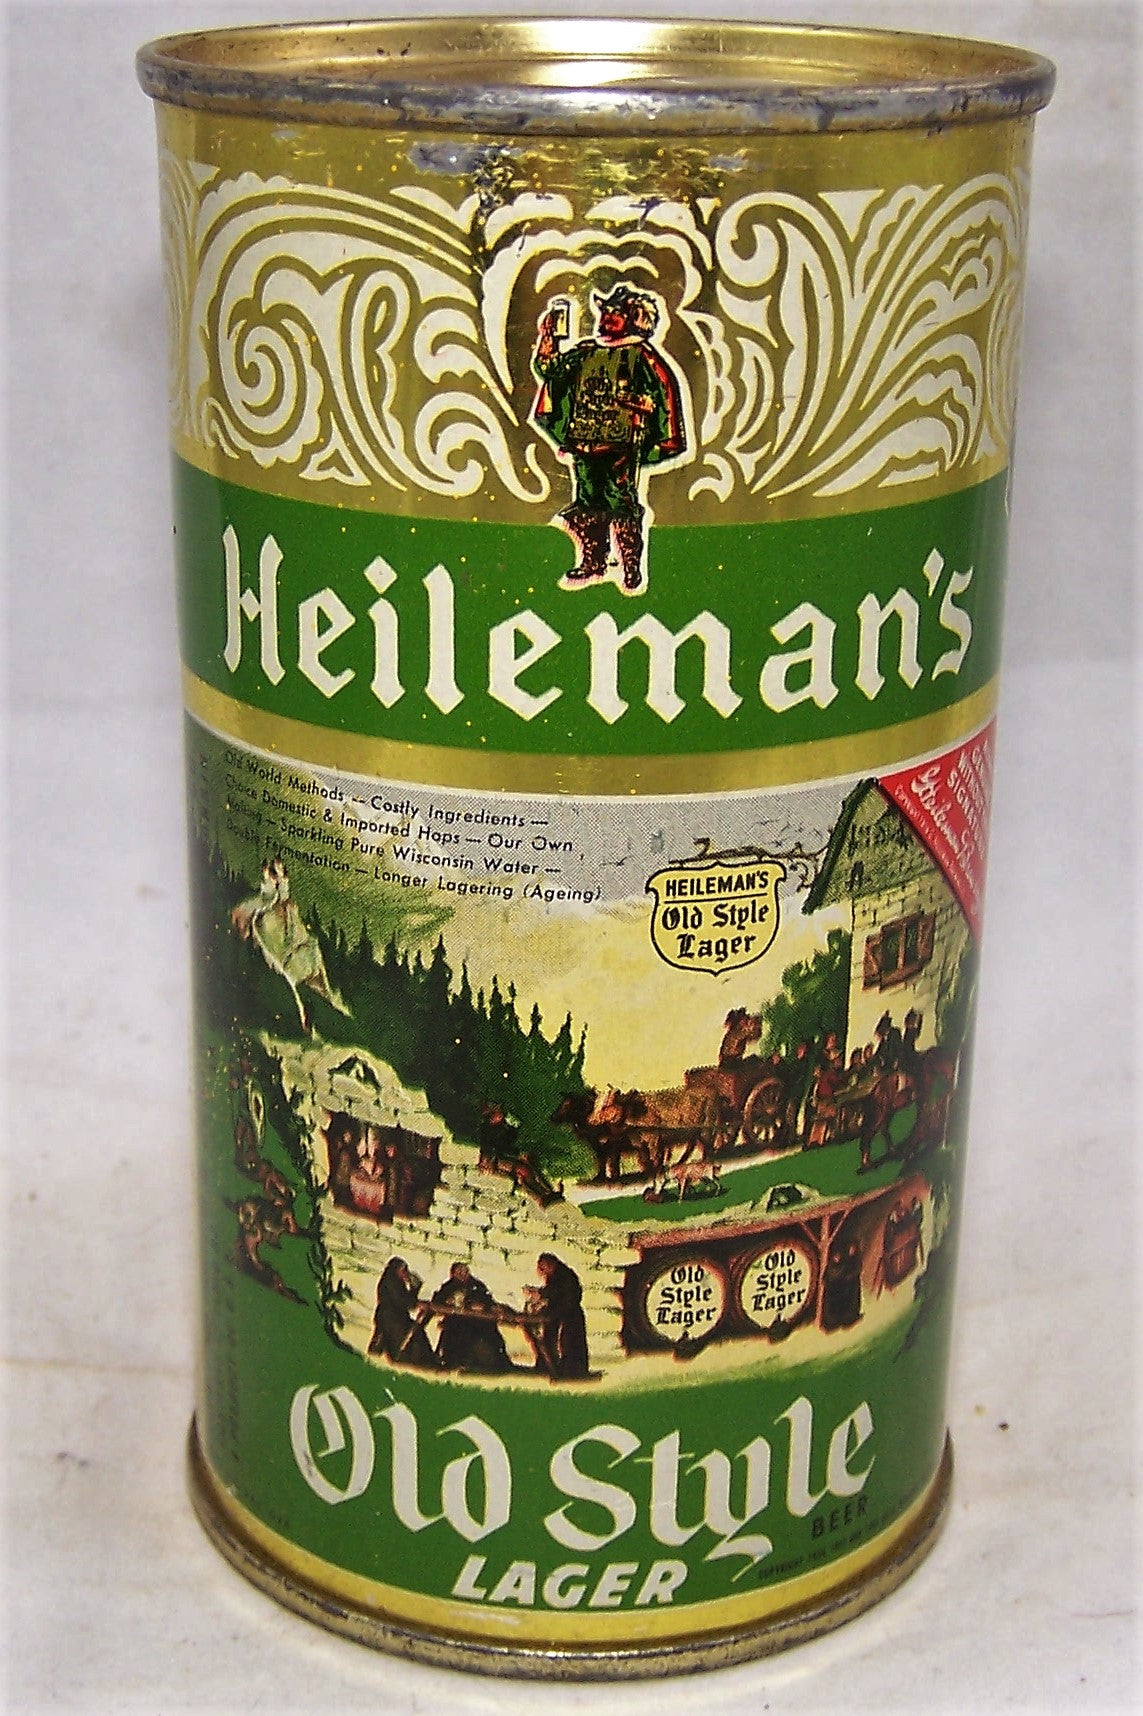 Heileman's Old Style Lager Beer, USBC 108-14, Grade 1/1+ Sold on 10/11/19